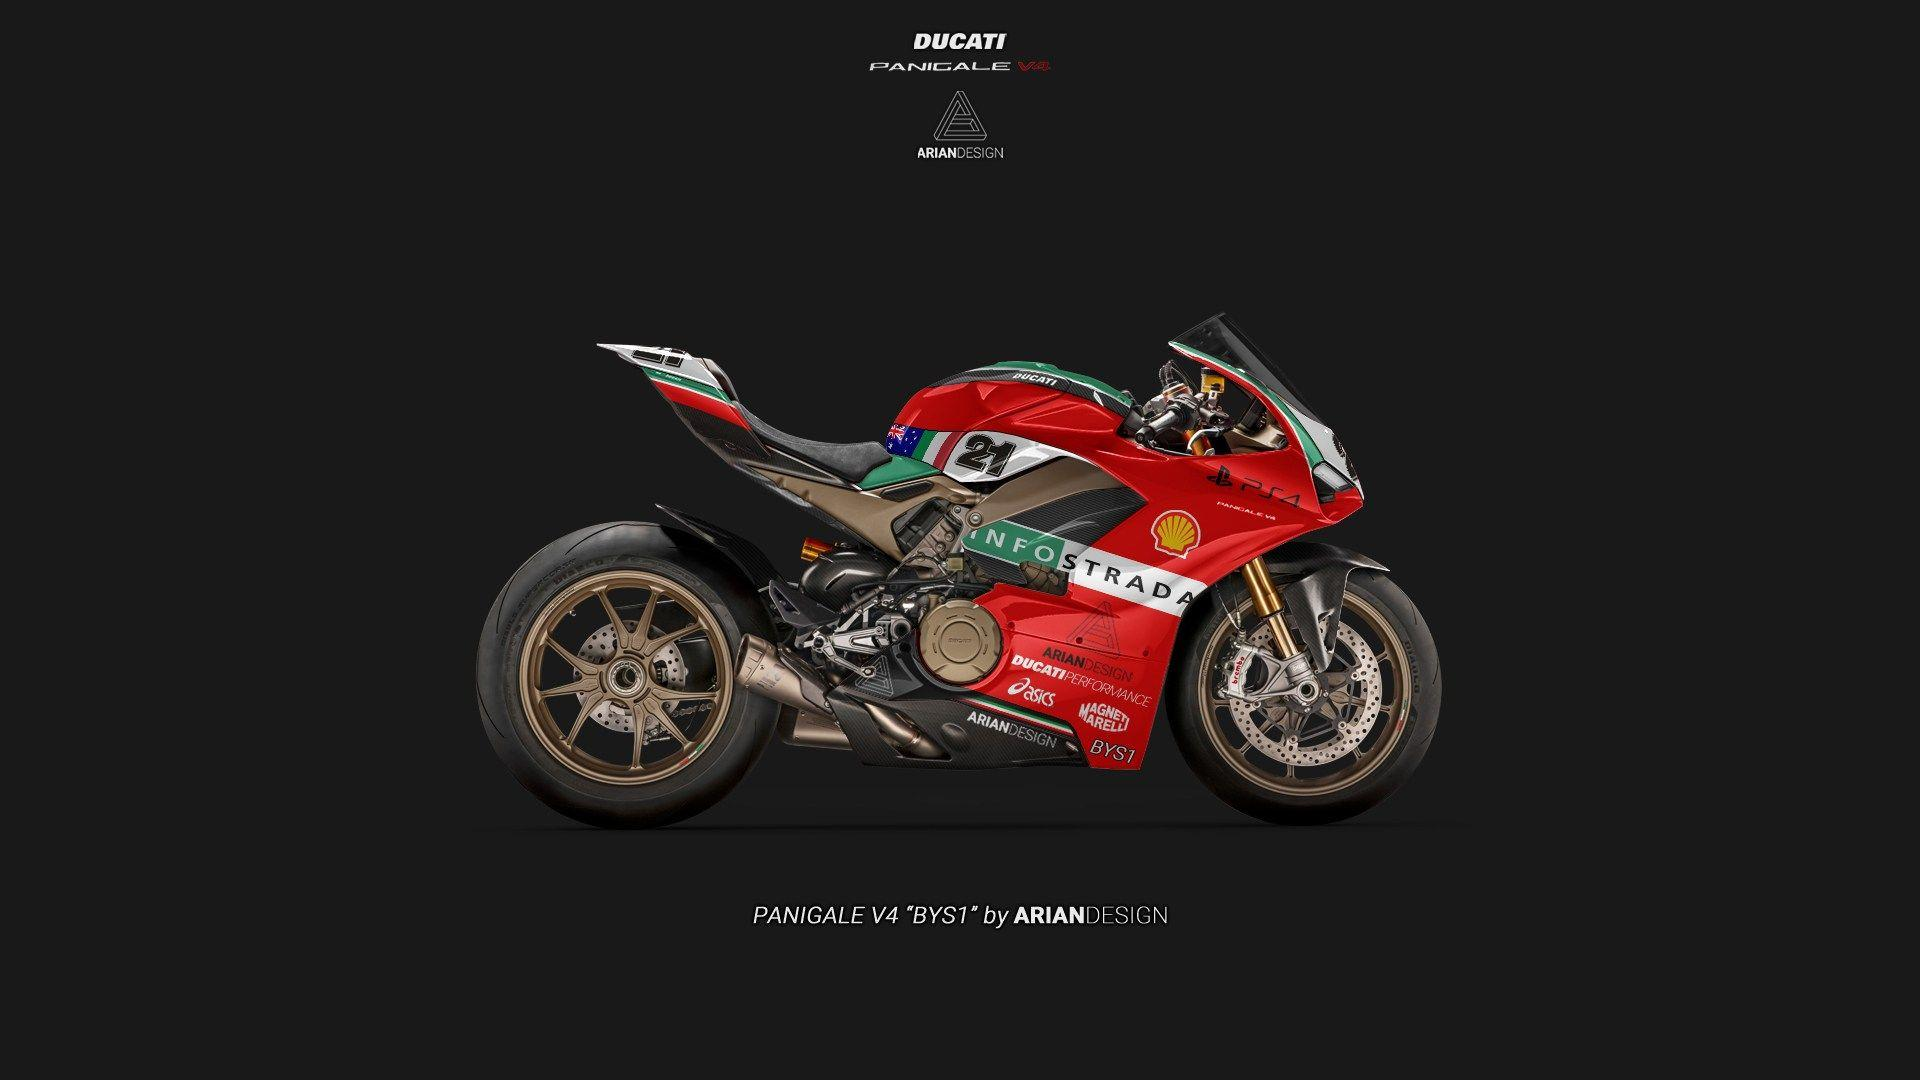 ducati panigale v4 wallpapers wallpaper cave. Black Bedroom Furniture Sets. Home Design Ideas